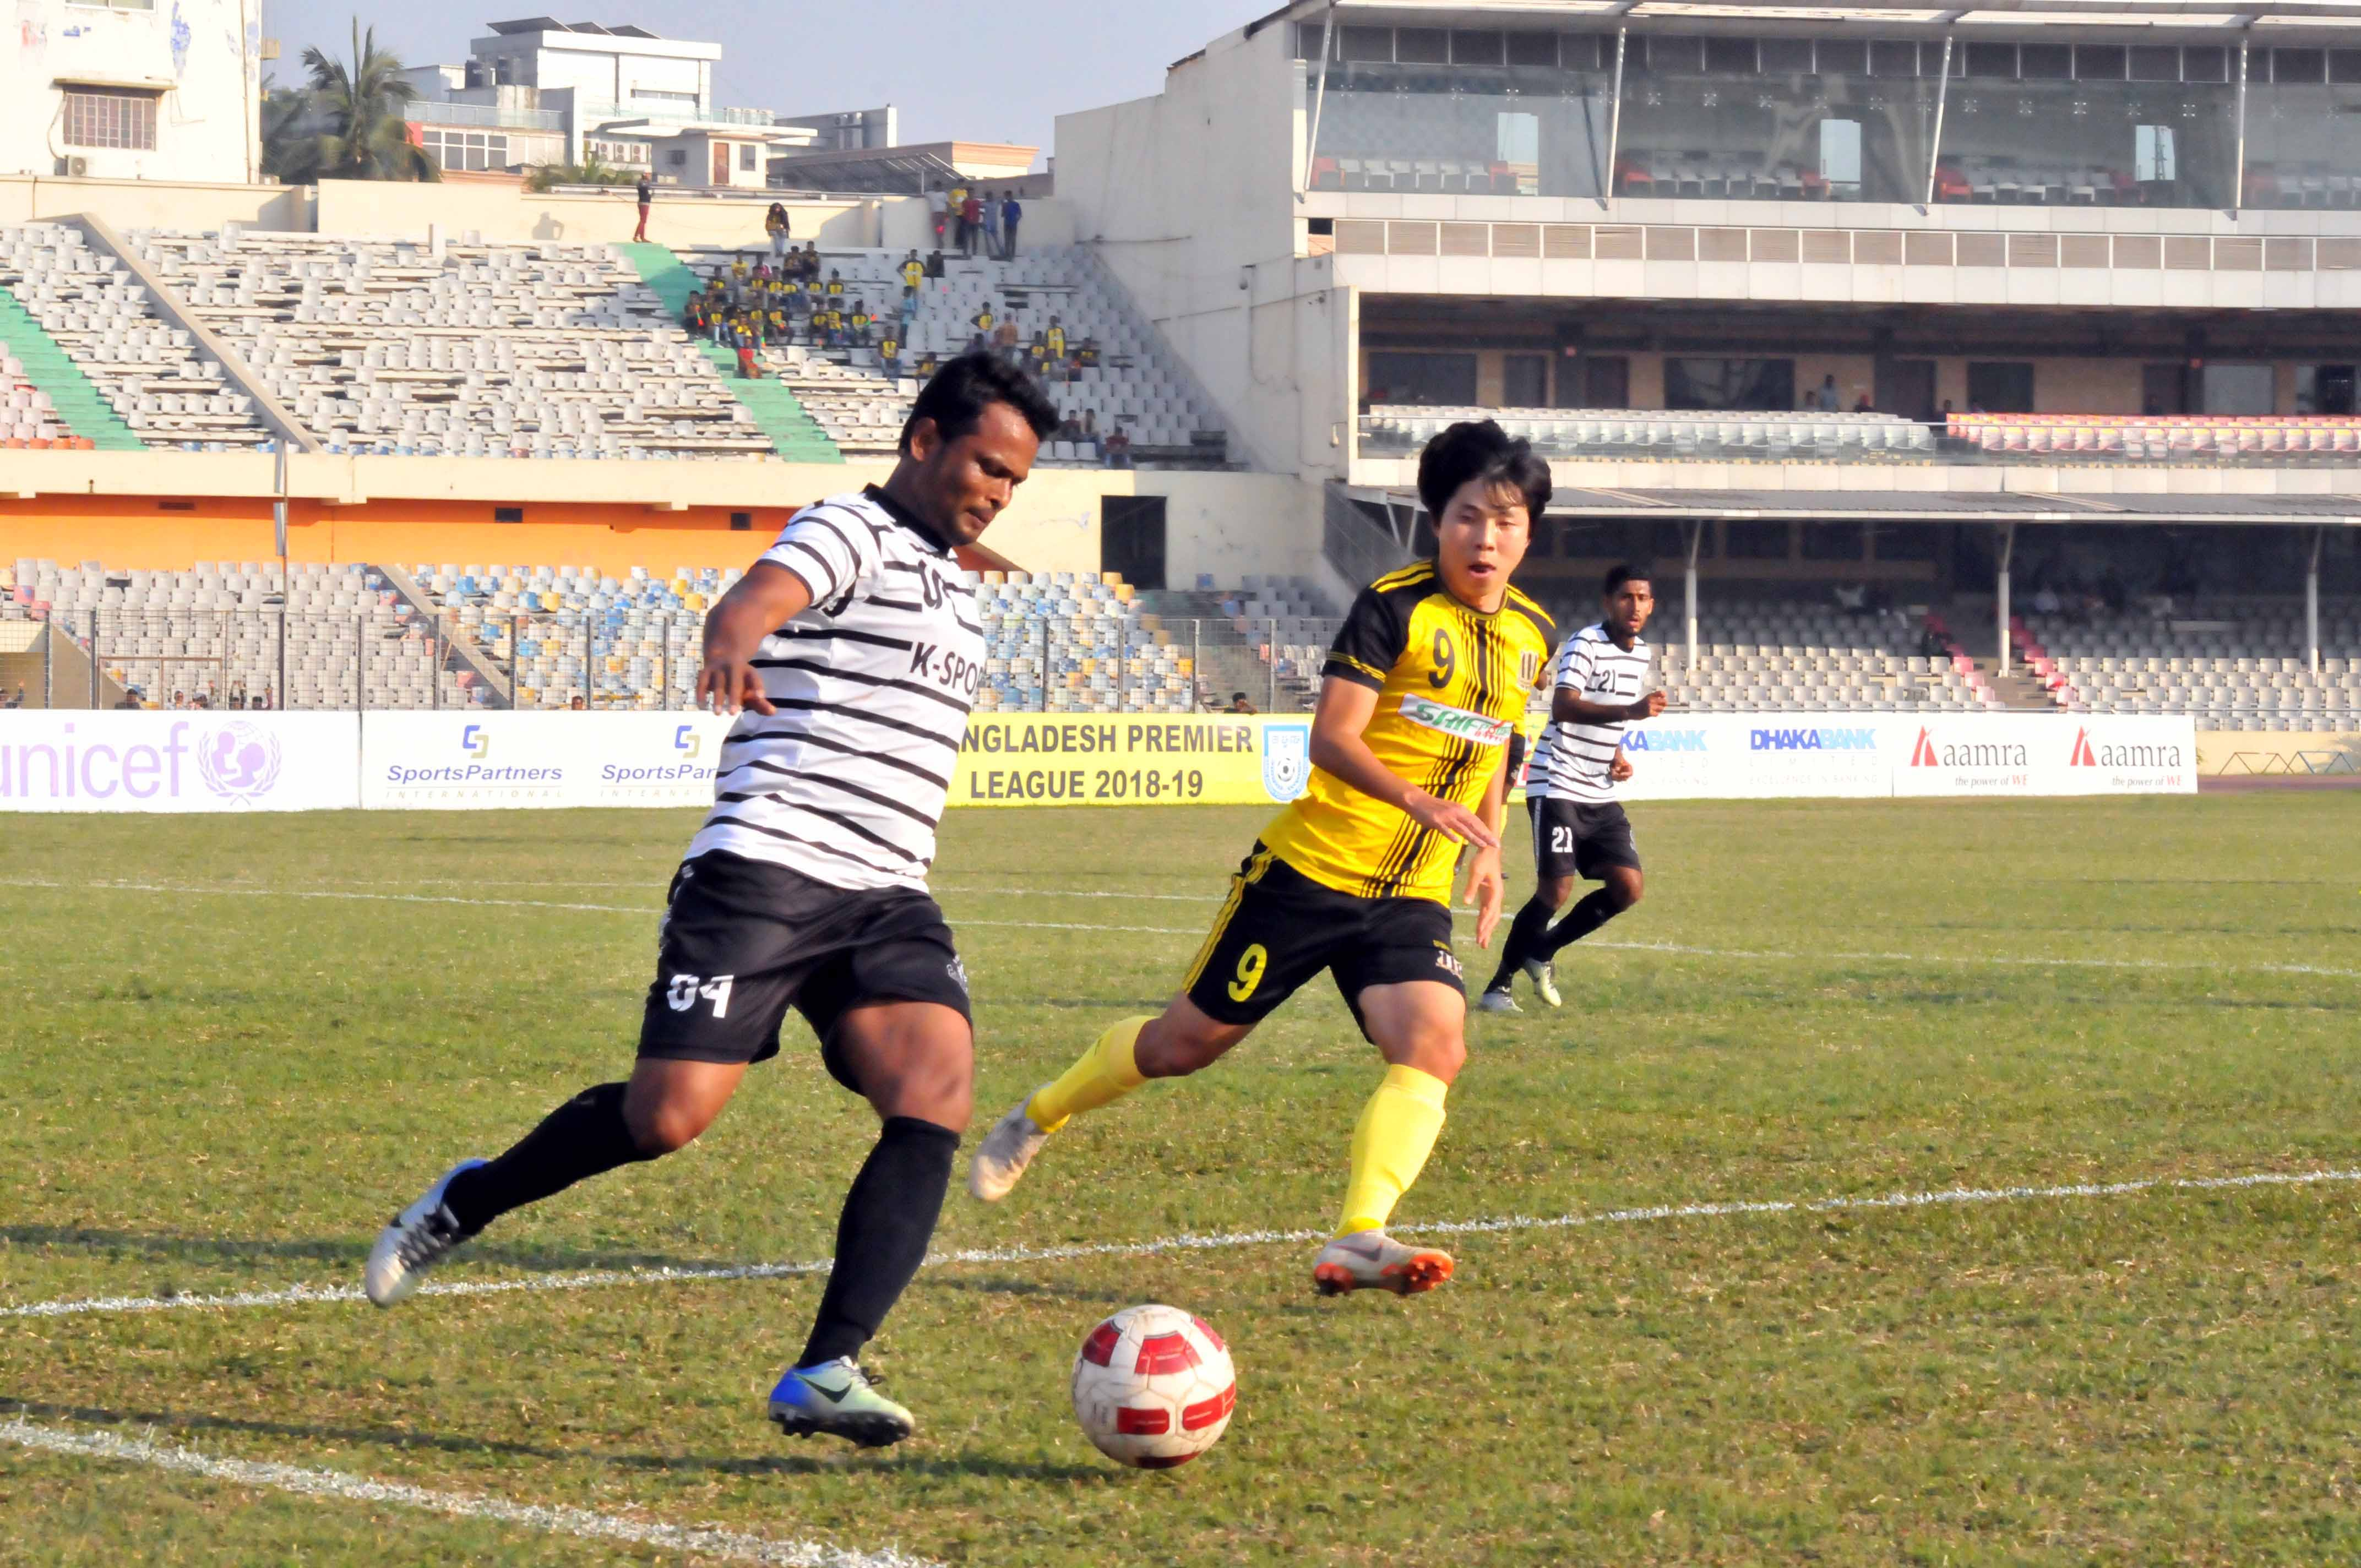 A moment of the football match of the Bangladesh Premier League between Saif Sporting Club and Dhaka         Mohammedan Sporting Club Limited at the Bangabandhu National Stadium on Wednesday. Saif Sporting Club won the match 2-1.